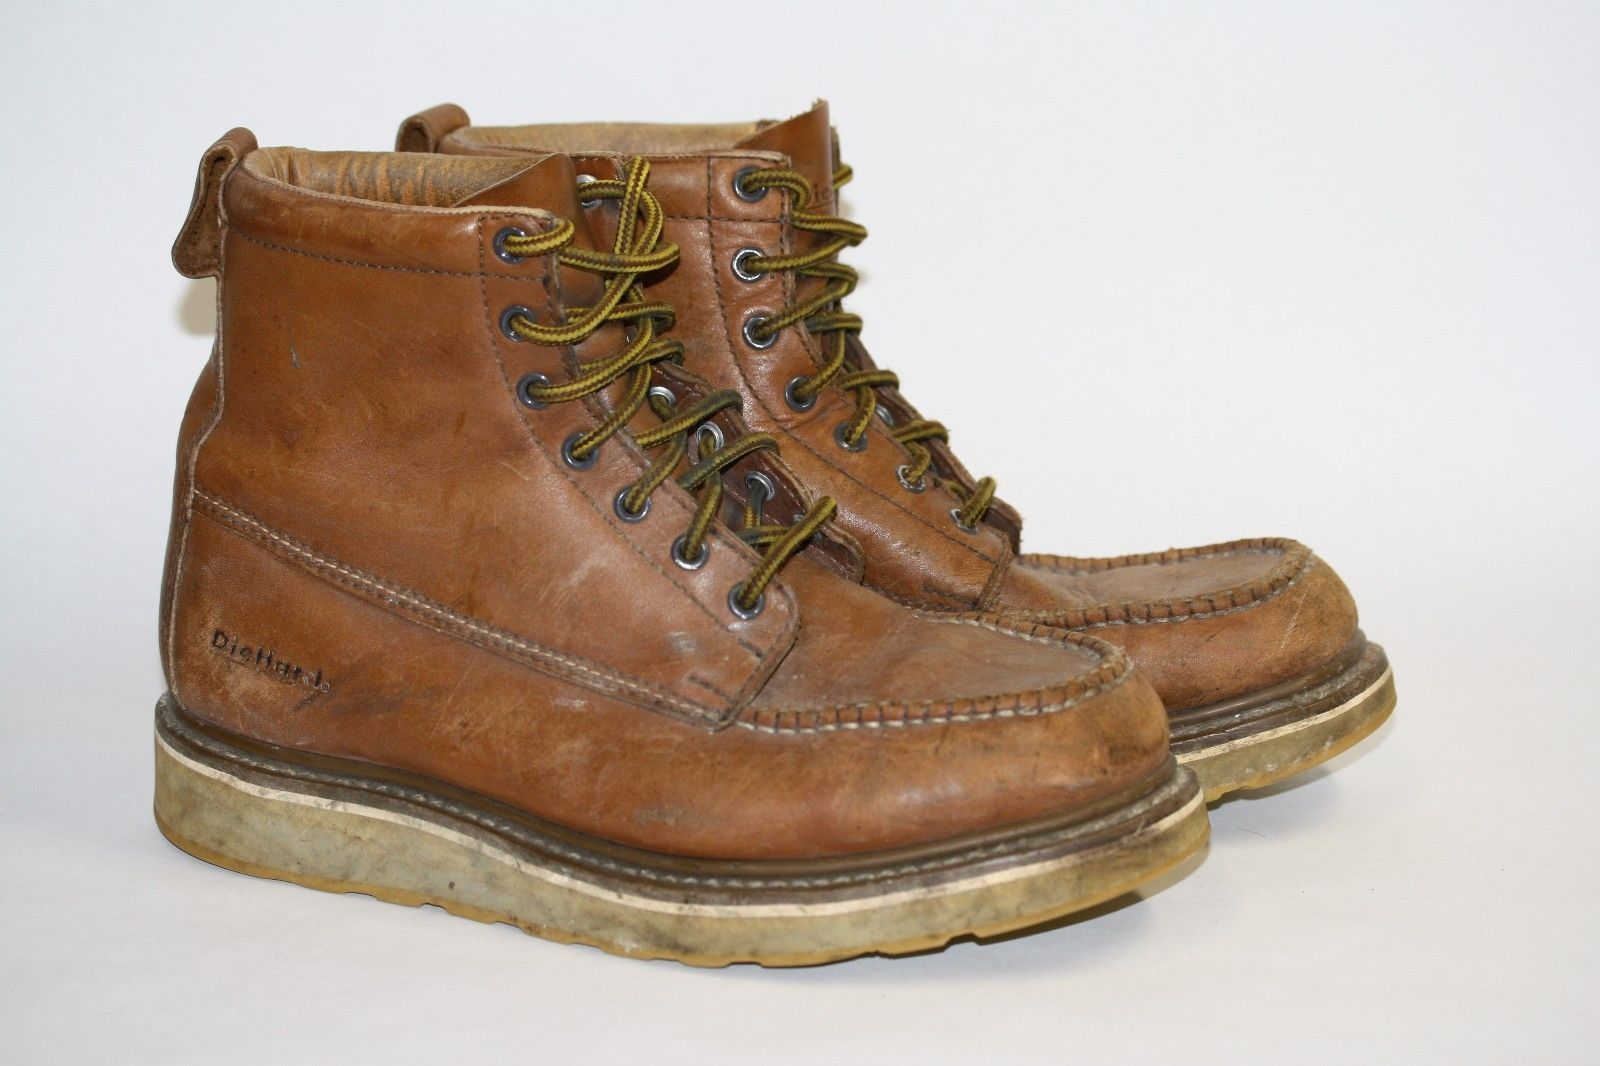 8a0aa1dd2906 Used Sears Diehard Sure Track Mens Work Boots Light Brown Size 10D Leather